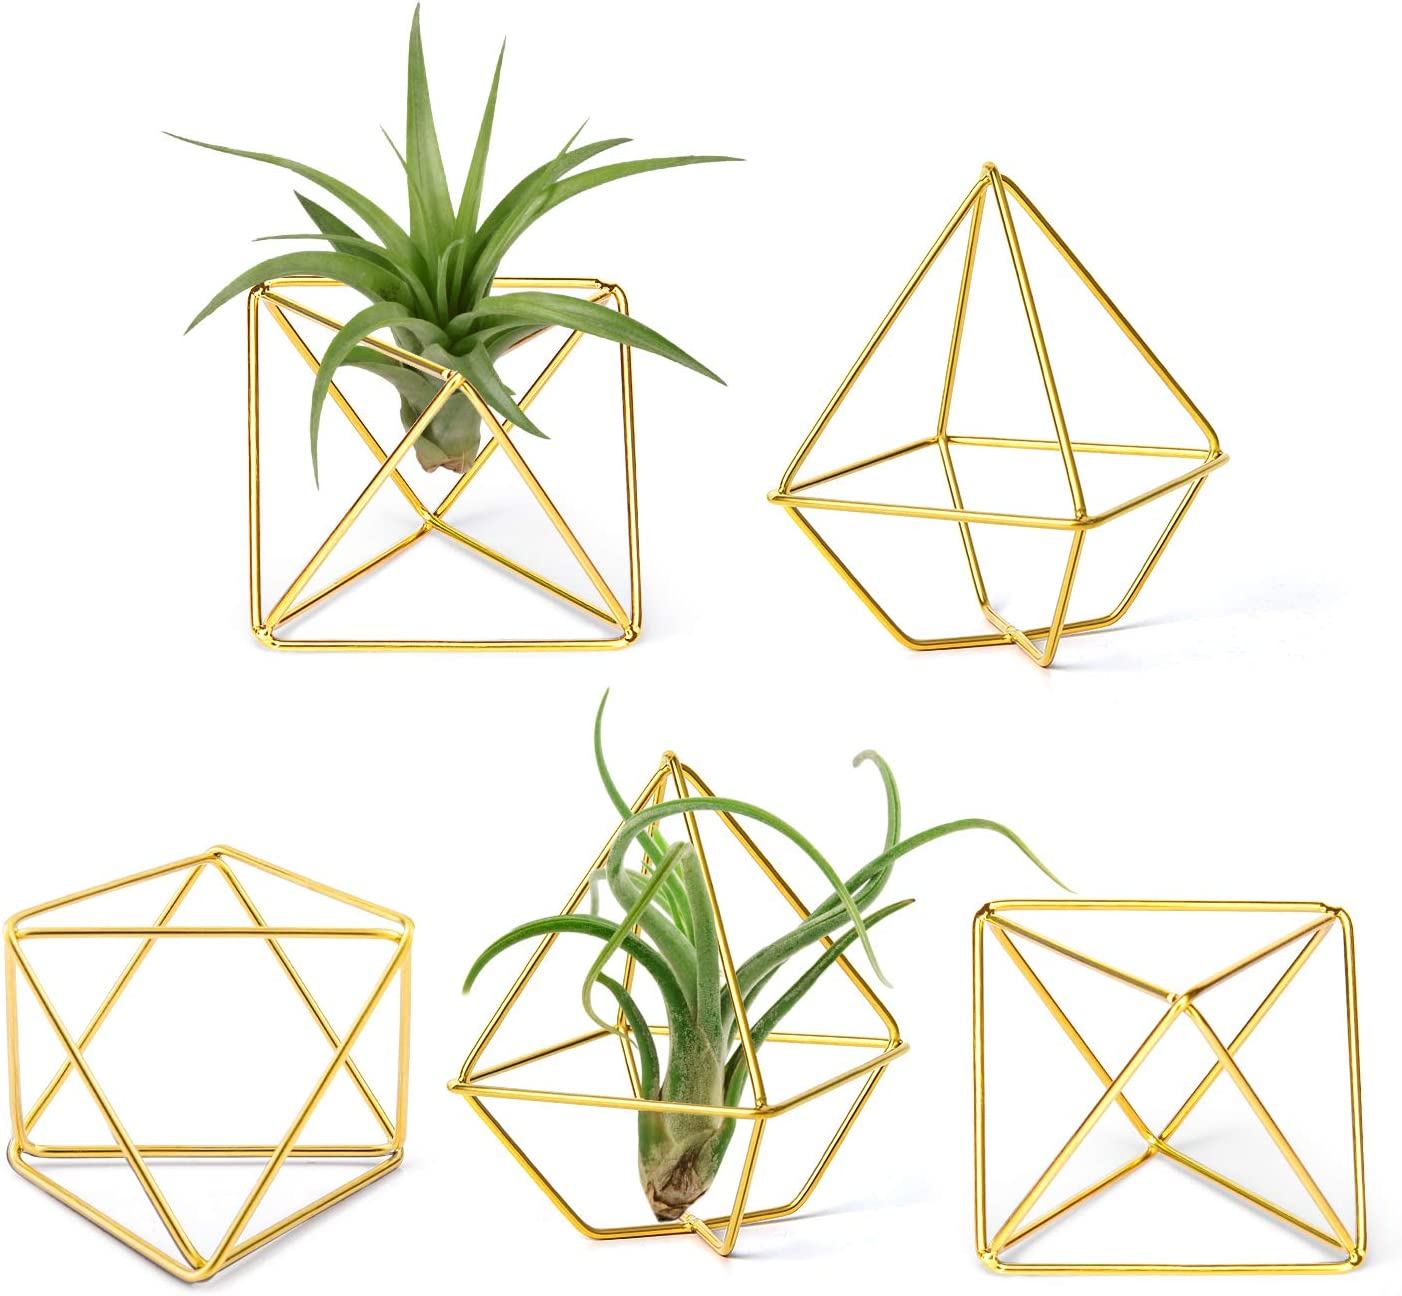 Mkono 5 Pack Air Plant Holder Metal Himmeli Decor in 2 Shapes Mini Desk Air Fern Display Stand Hanging Airplants Rack Modern Geometric Planter Tillandsia Hanger for Home Office Wedding Gift Idea, Gold